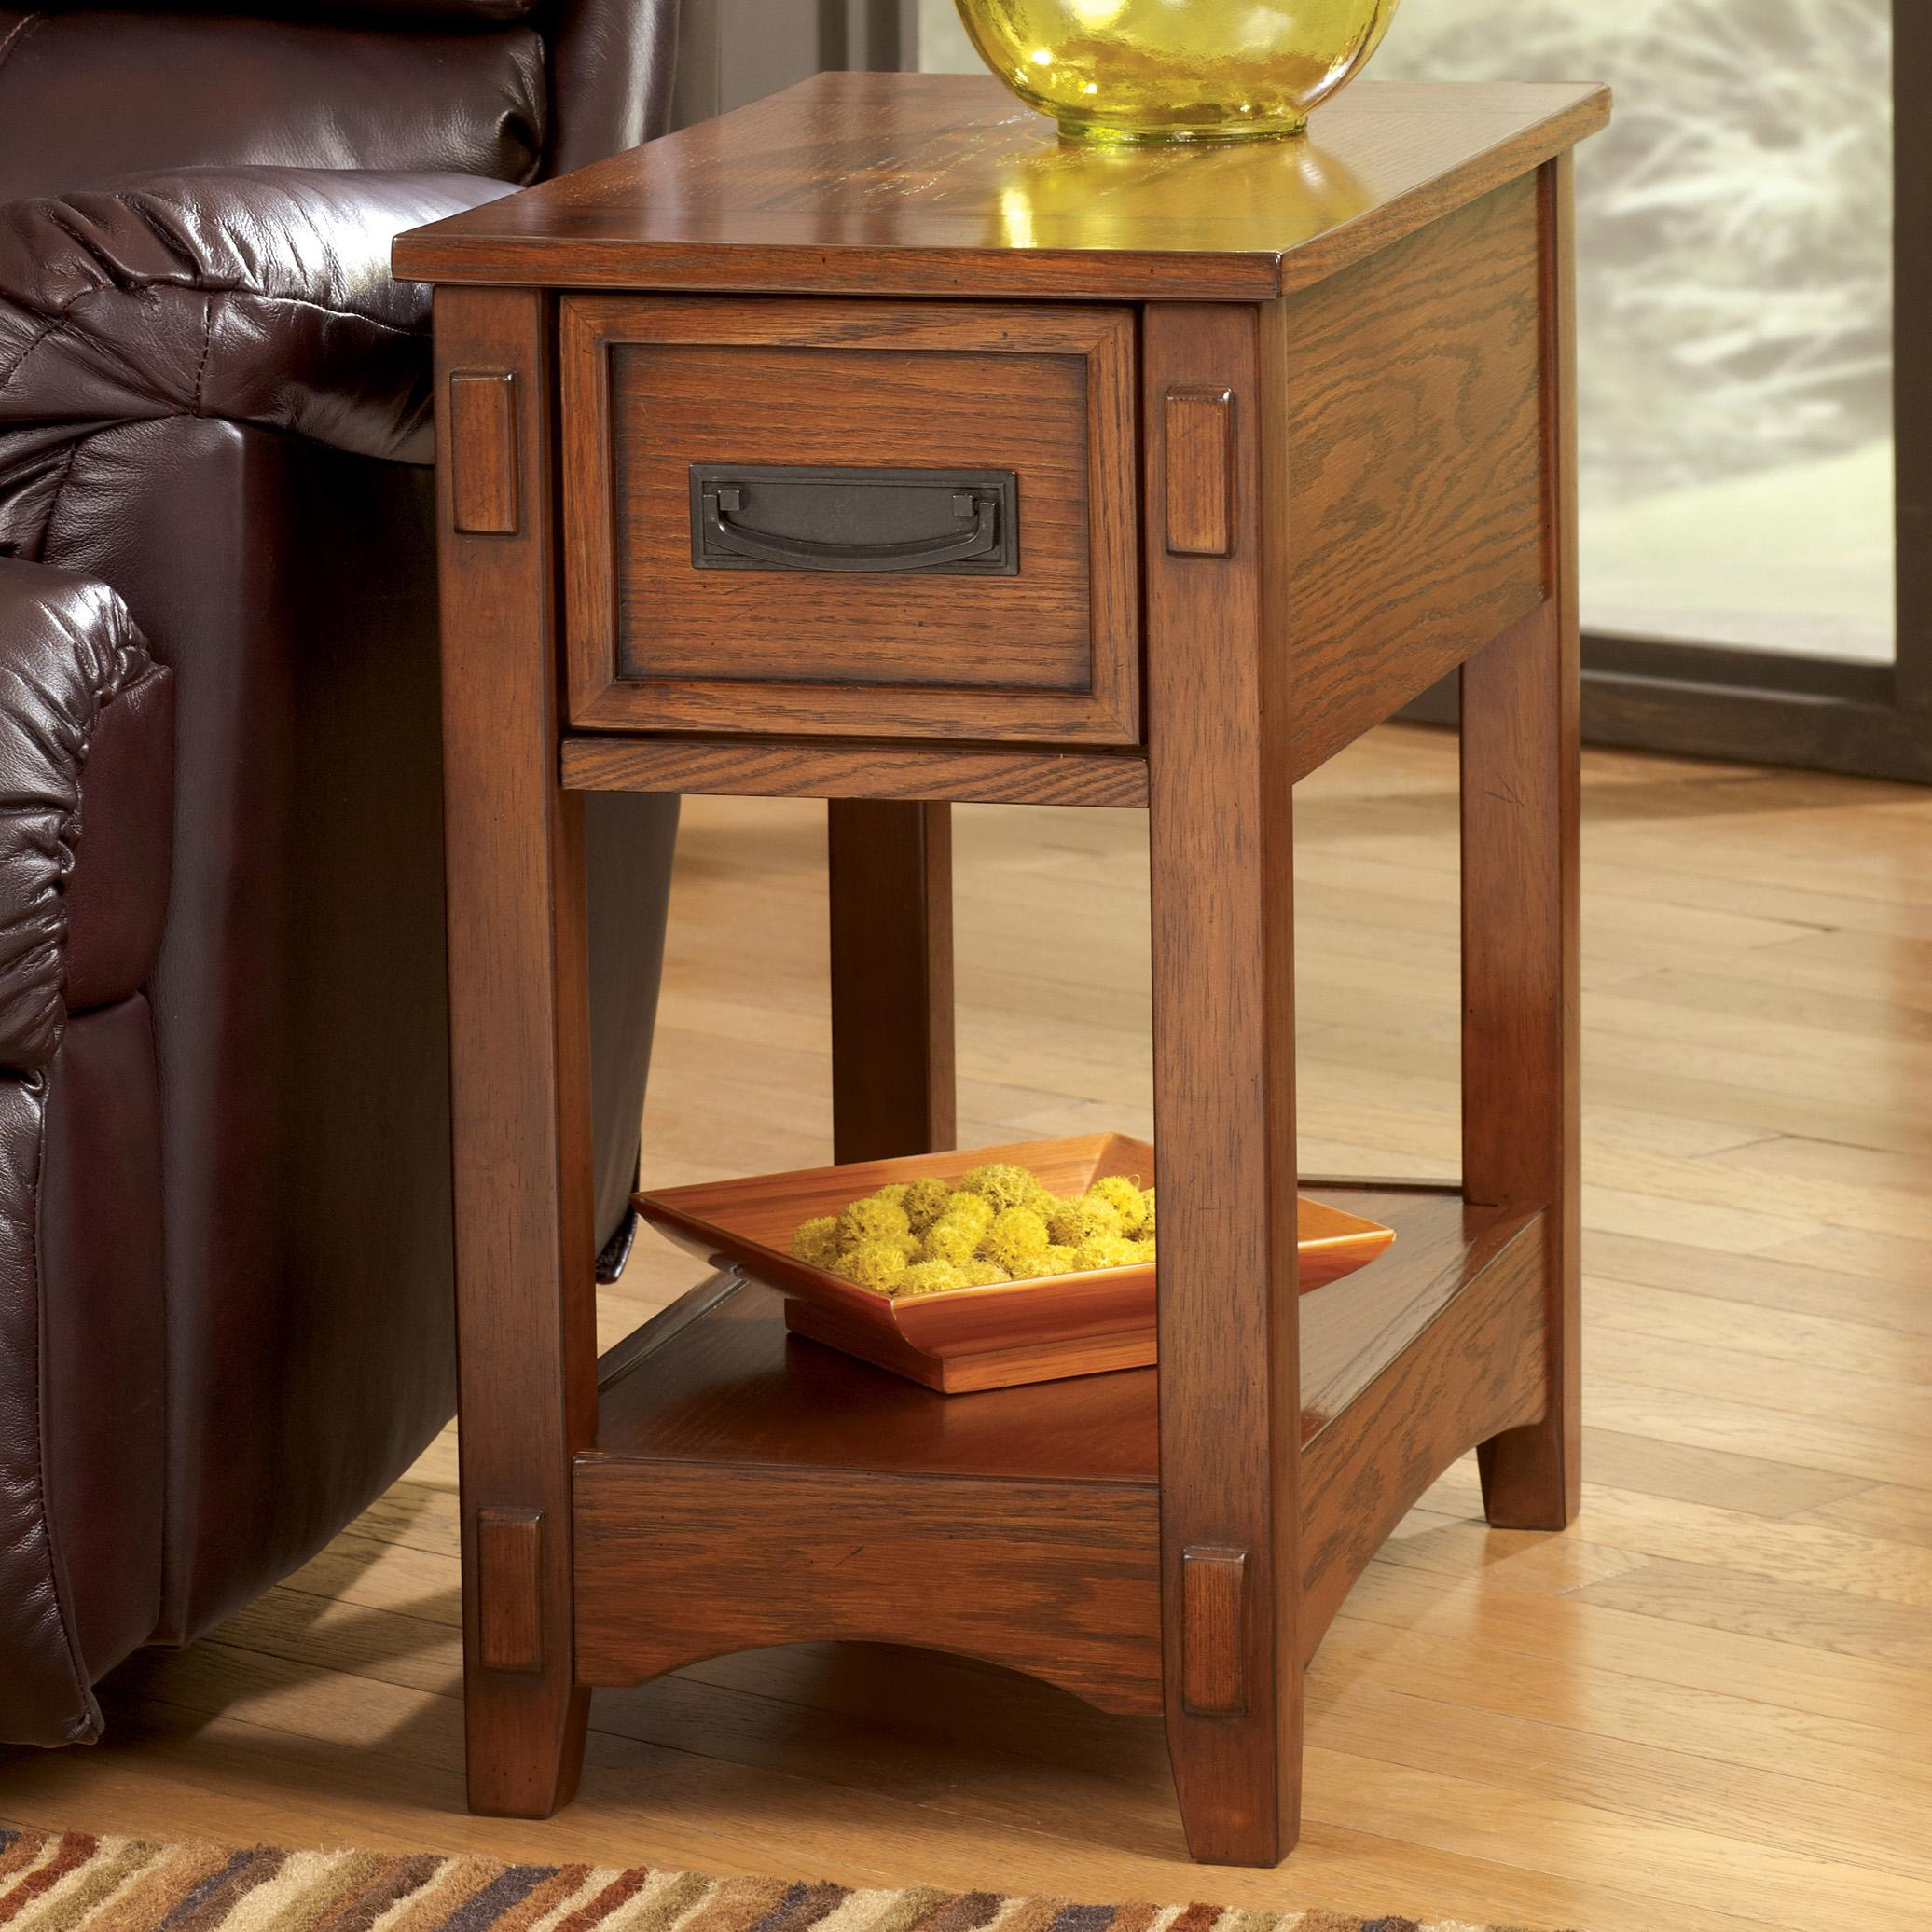 Breegin Chairside End Table by Signature at Walker's Furniture